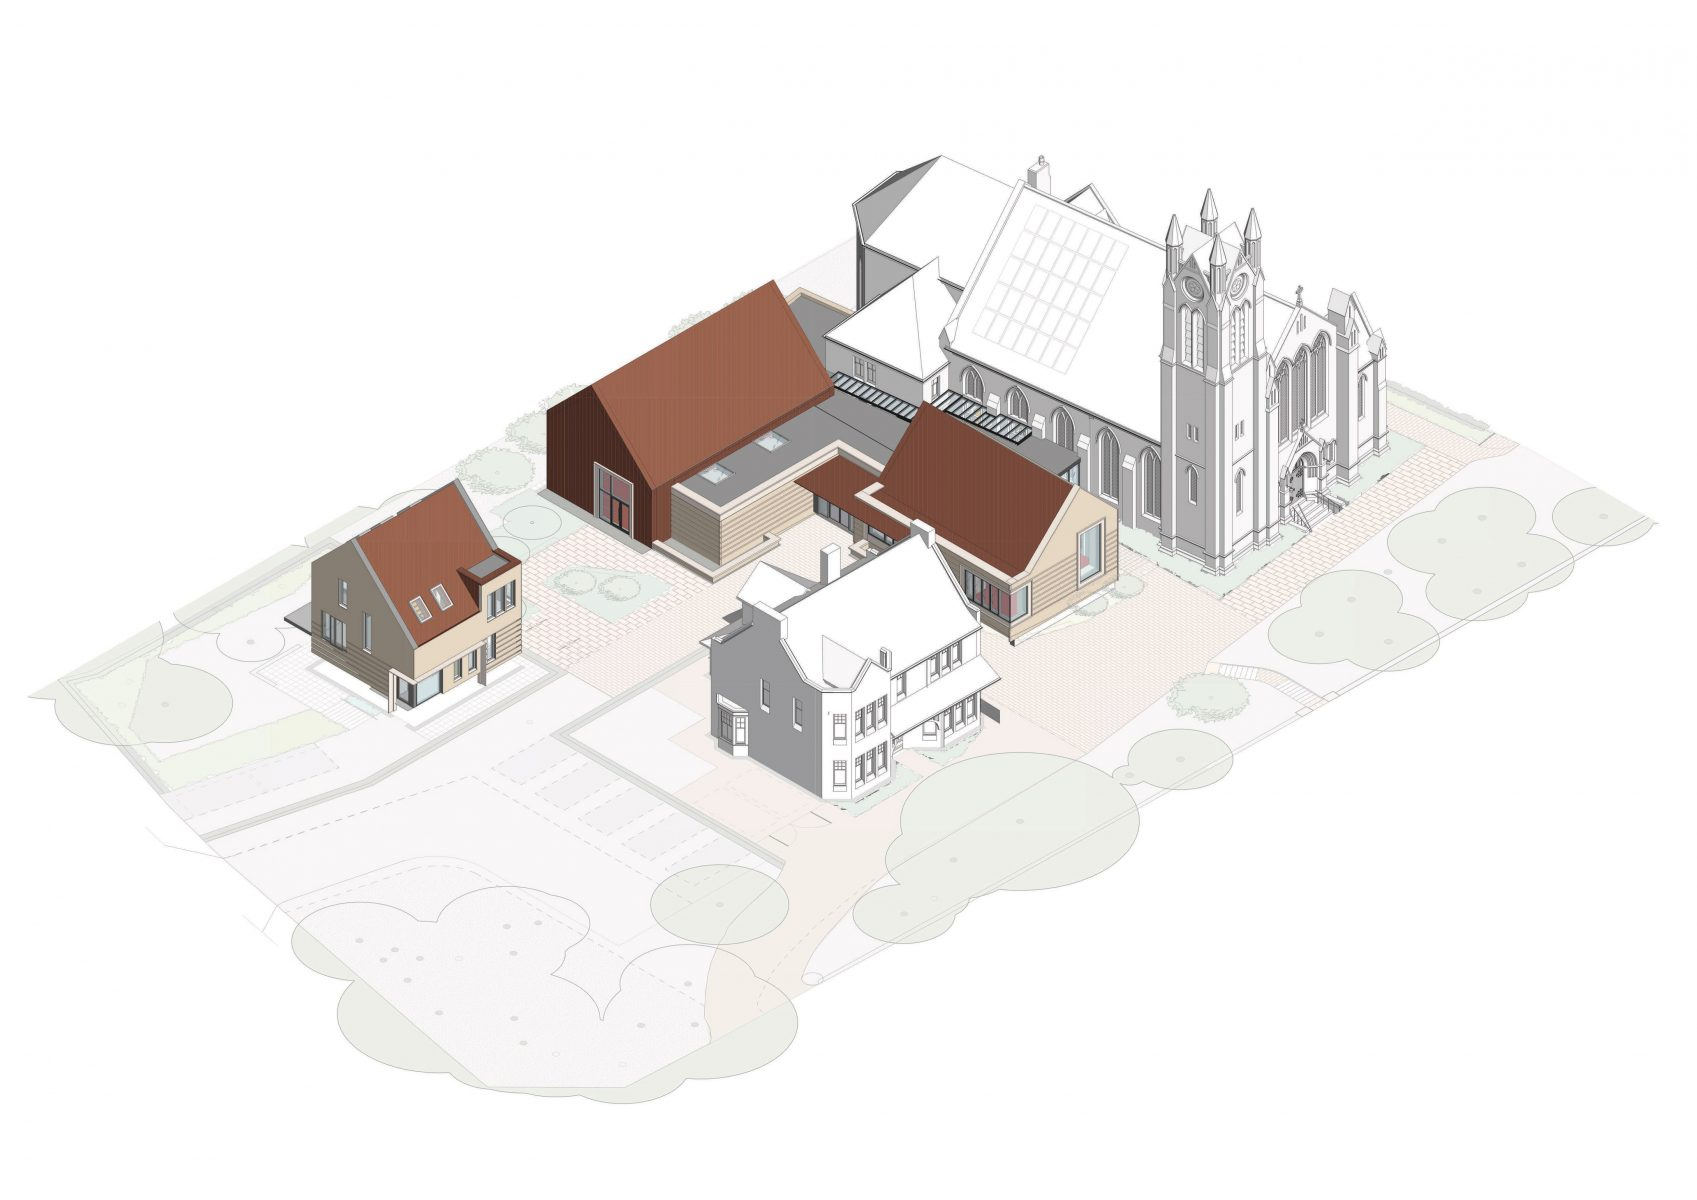 Axonometric view of the scheme showing the relationship of the building to the existing church and manse building, and the creation of courtyards in the new landscape setting.